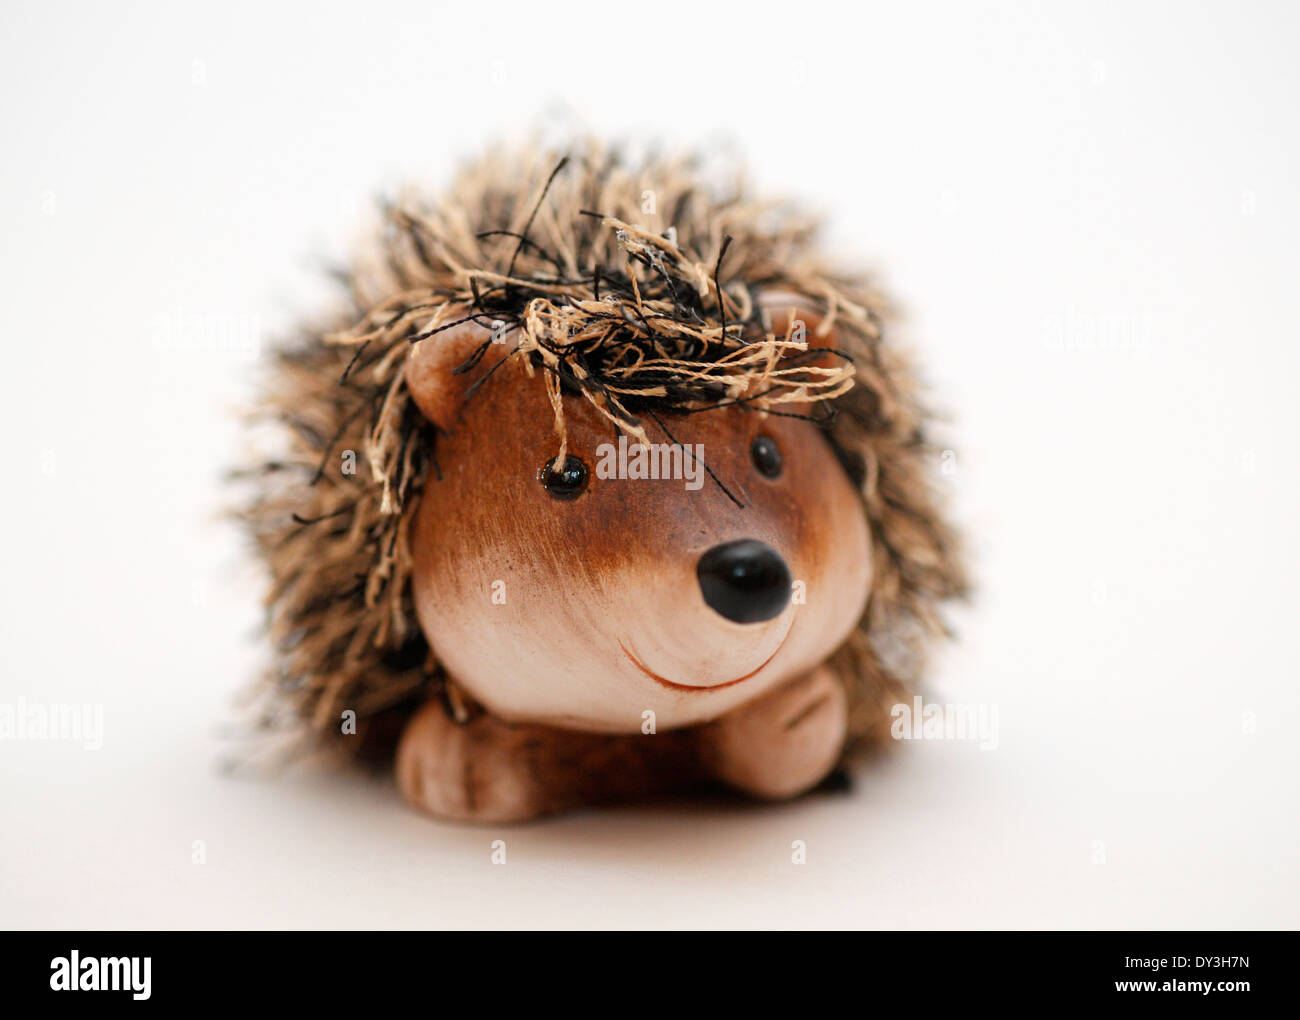 A smiling hedgehog toy. - Stock Image